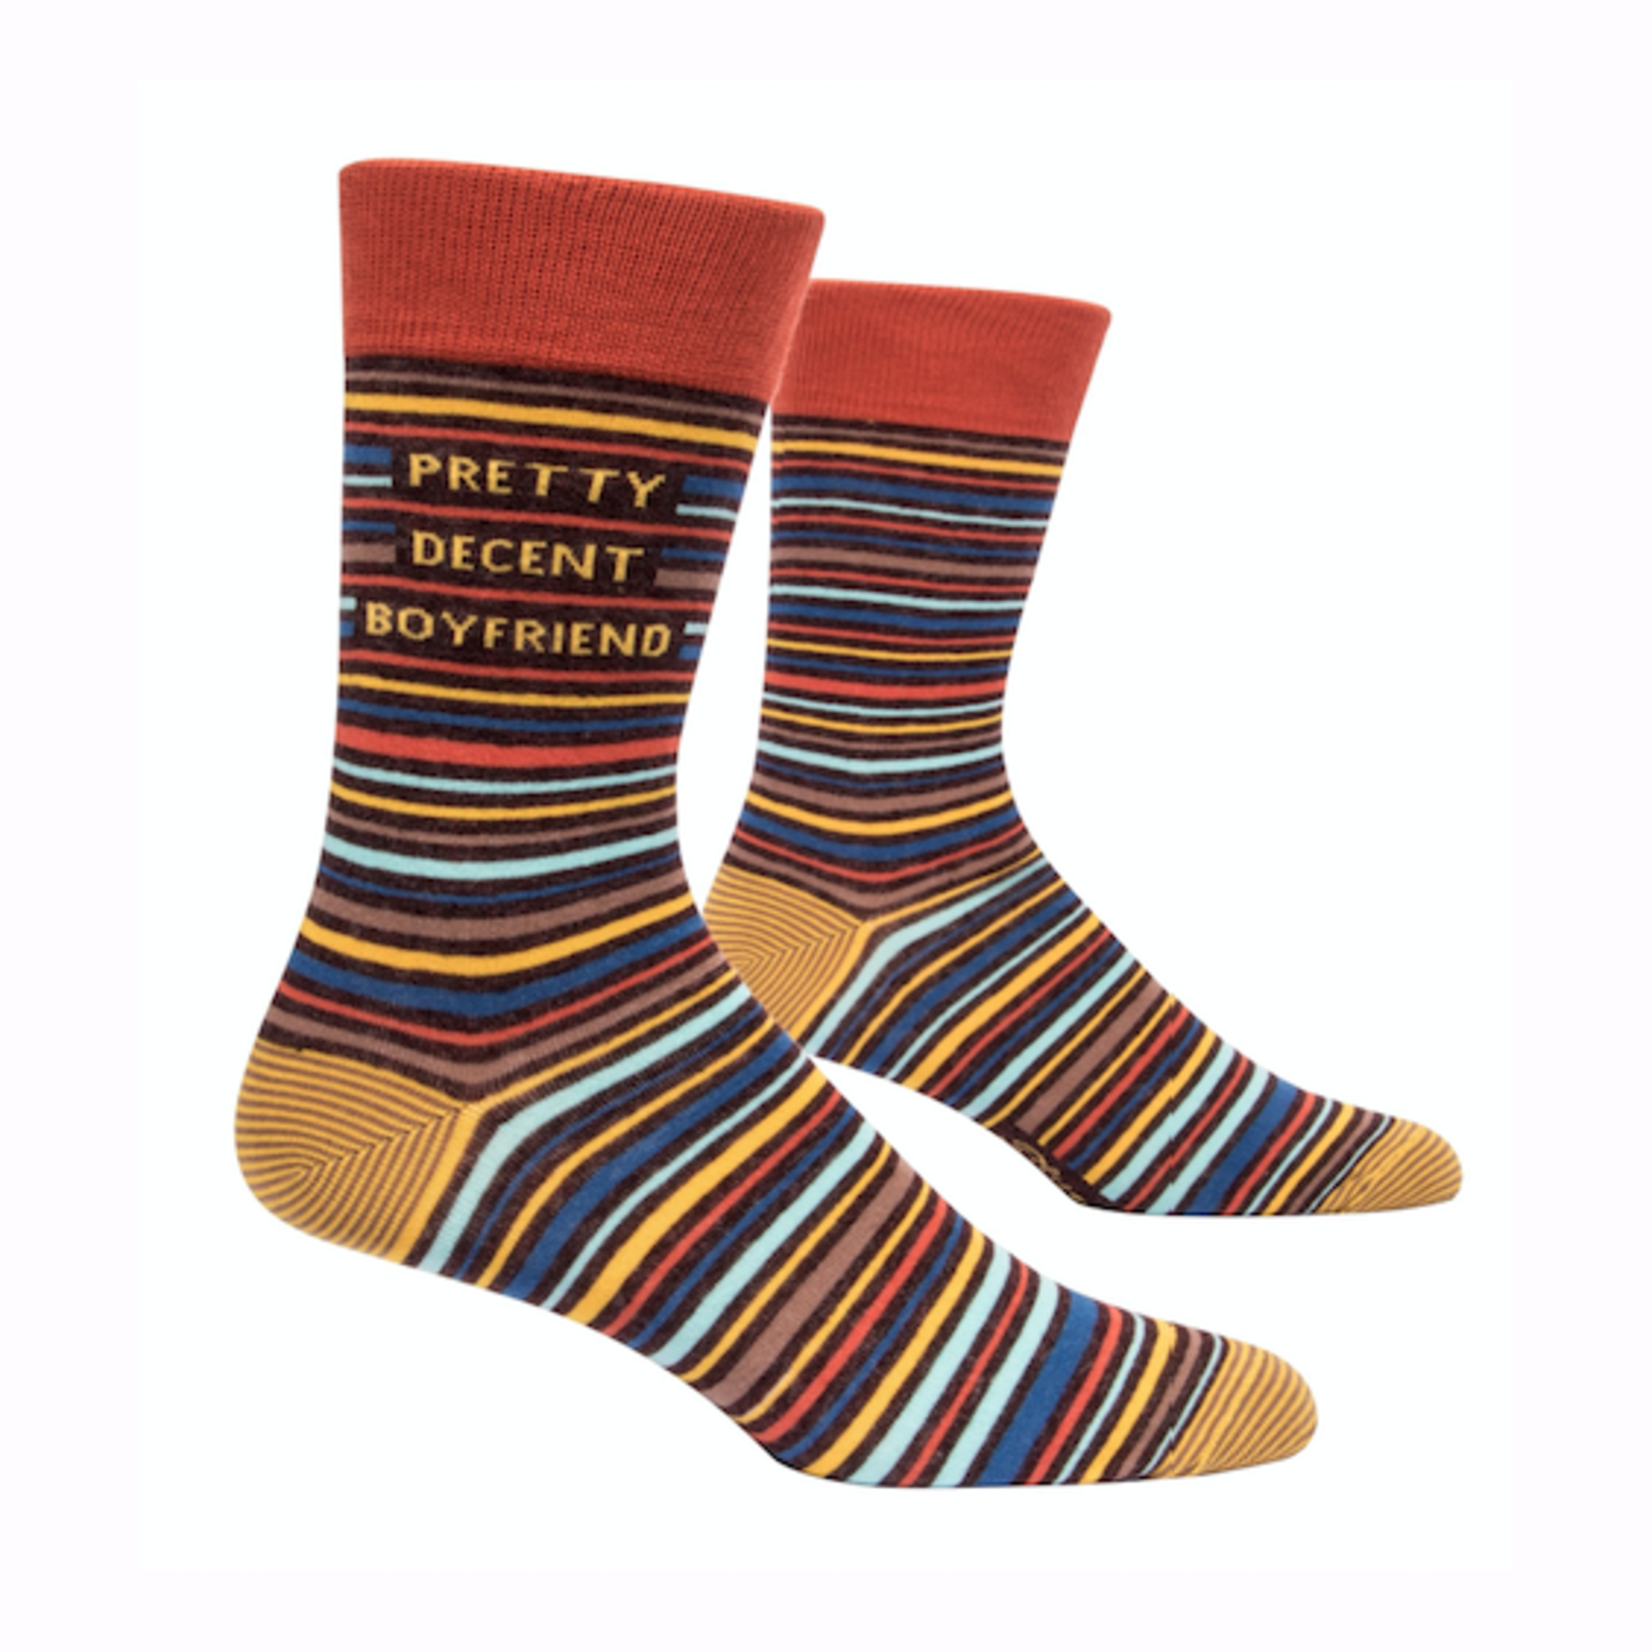 Pretty Decent BF Men's Crew Socks